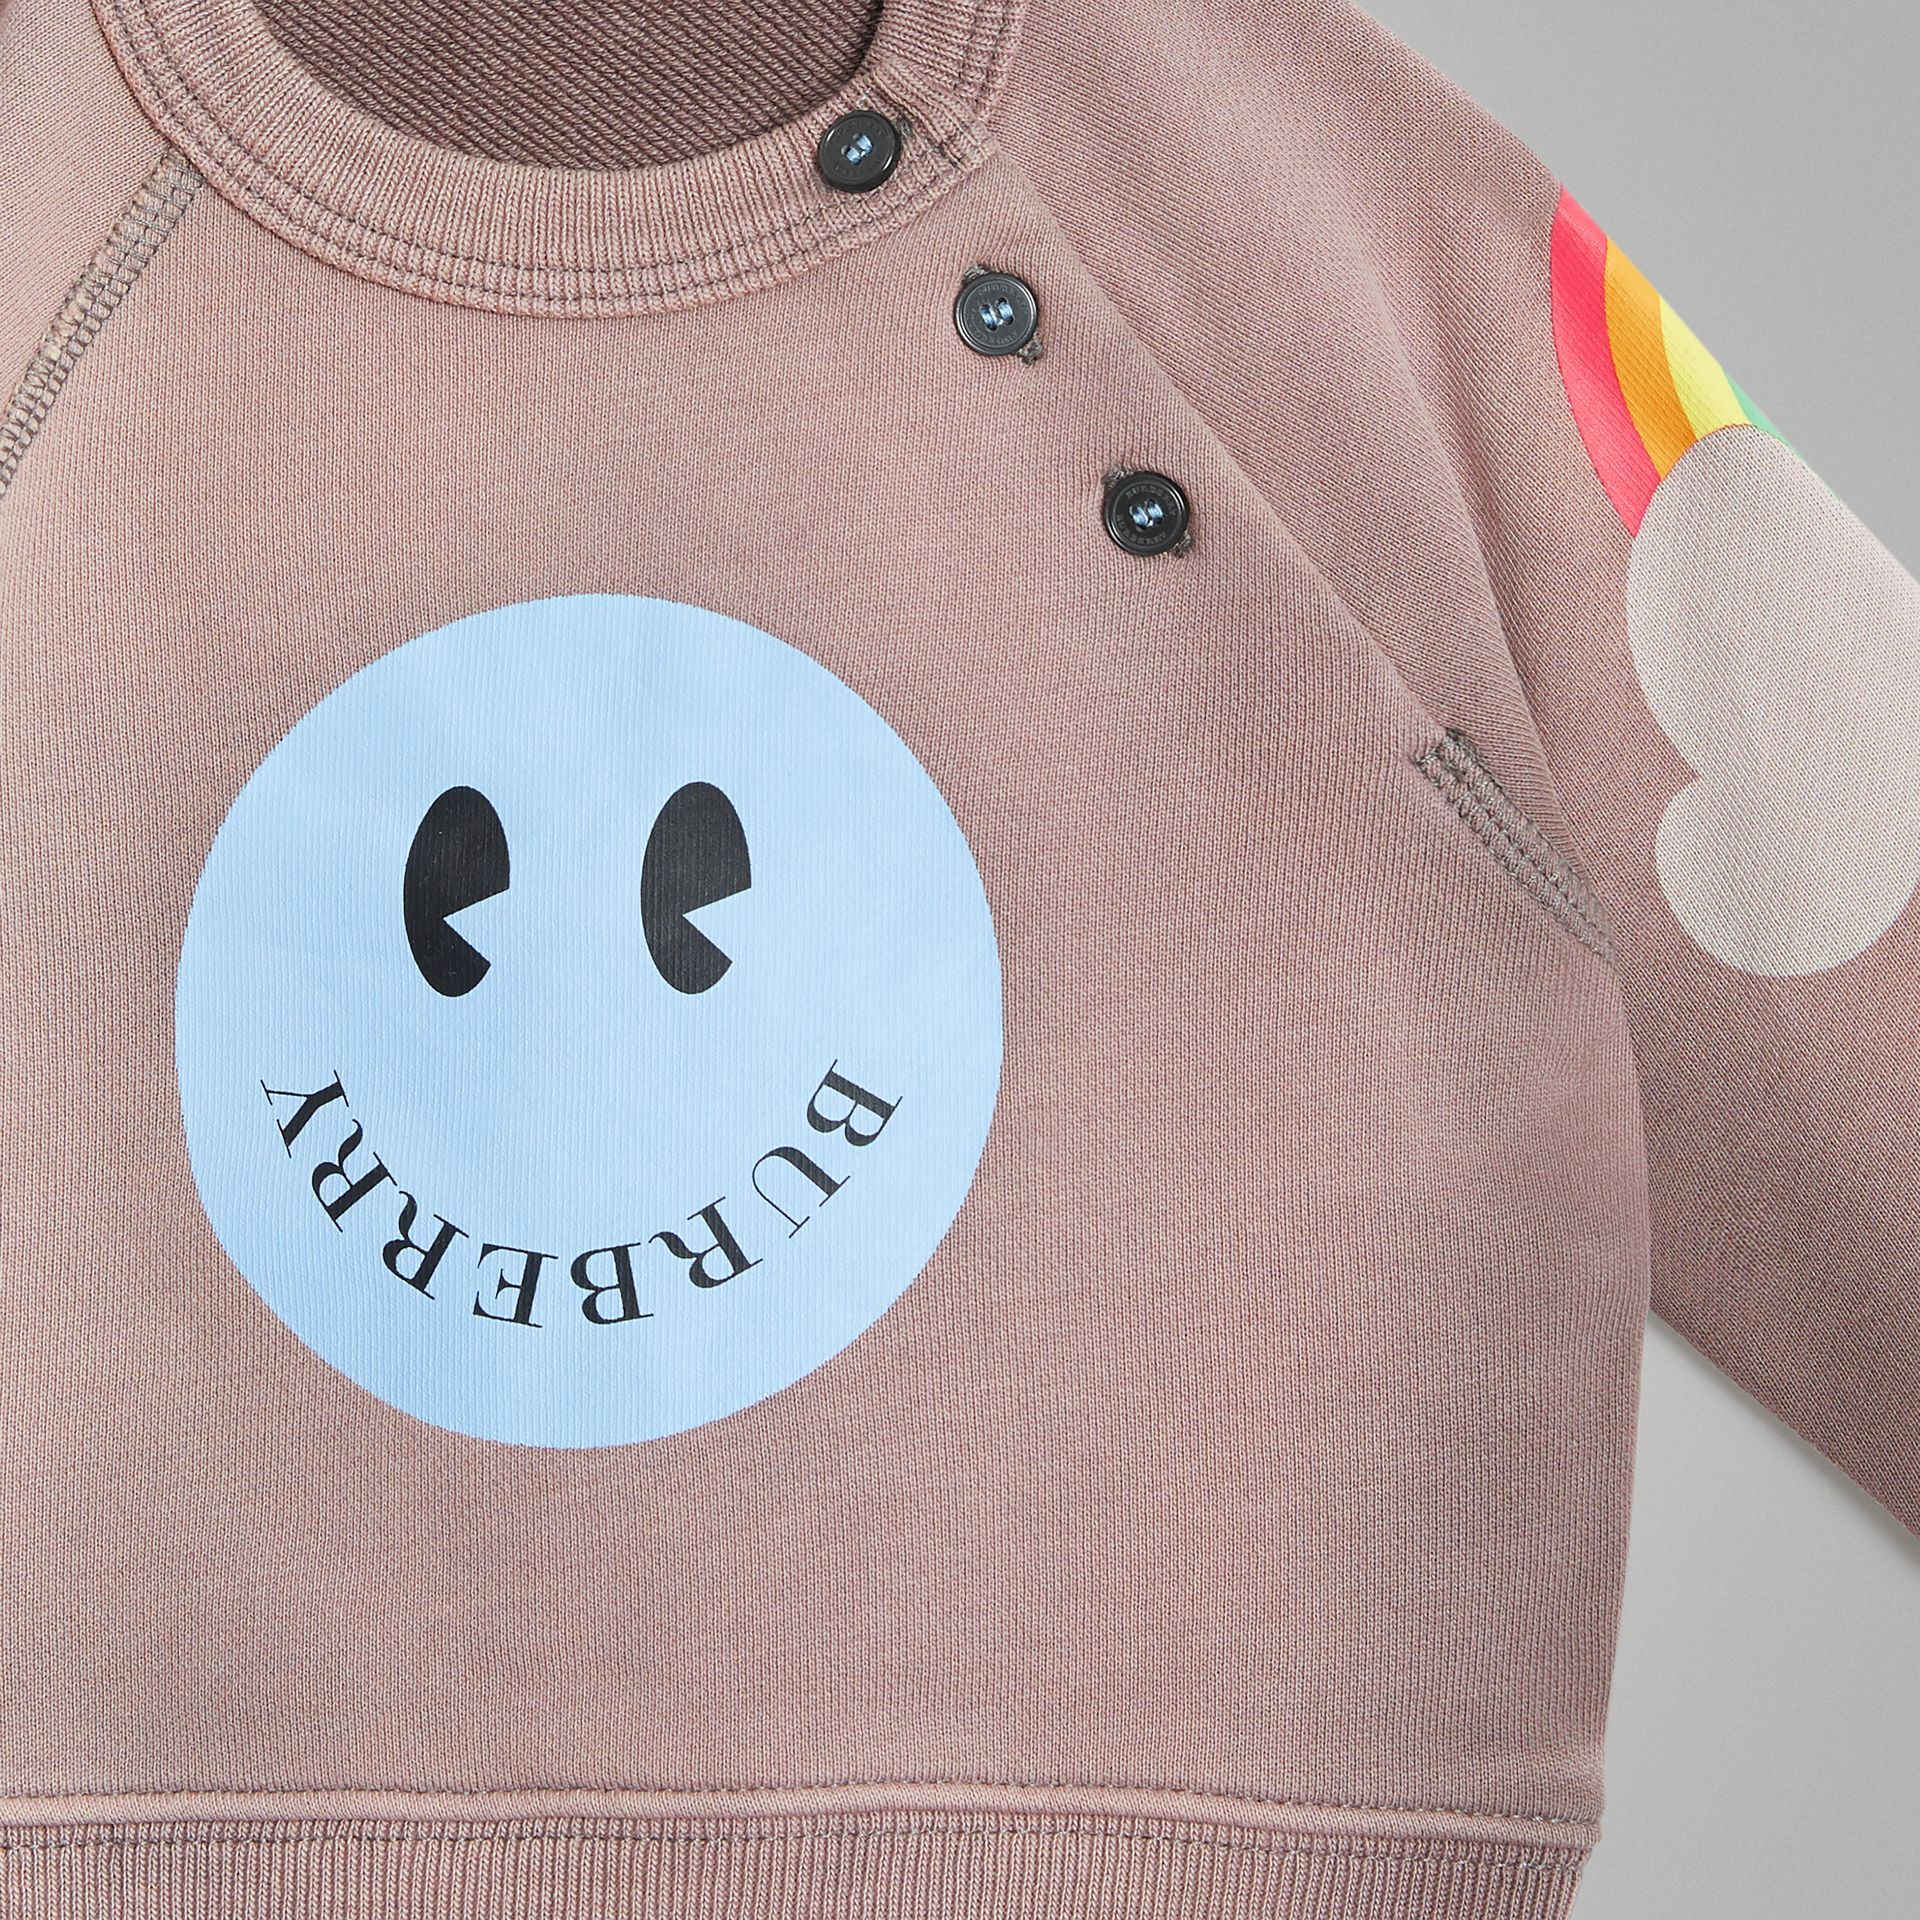 Smiley Face Print Cotton Sweatshirt in Mauve - Children | Burberry United Kingdom - gallery image 4